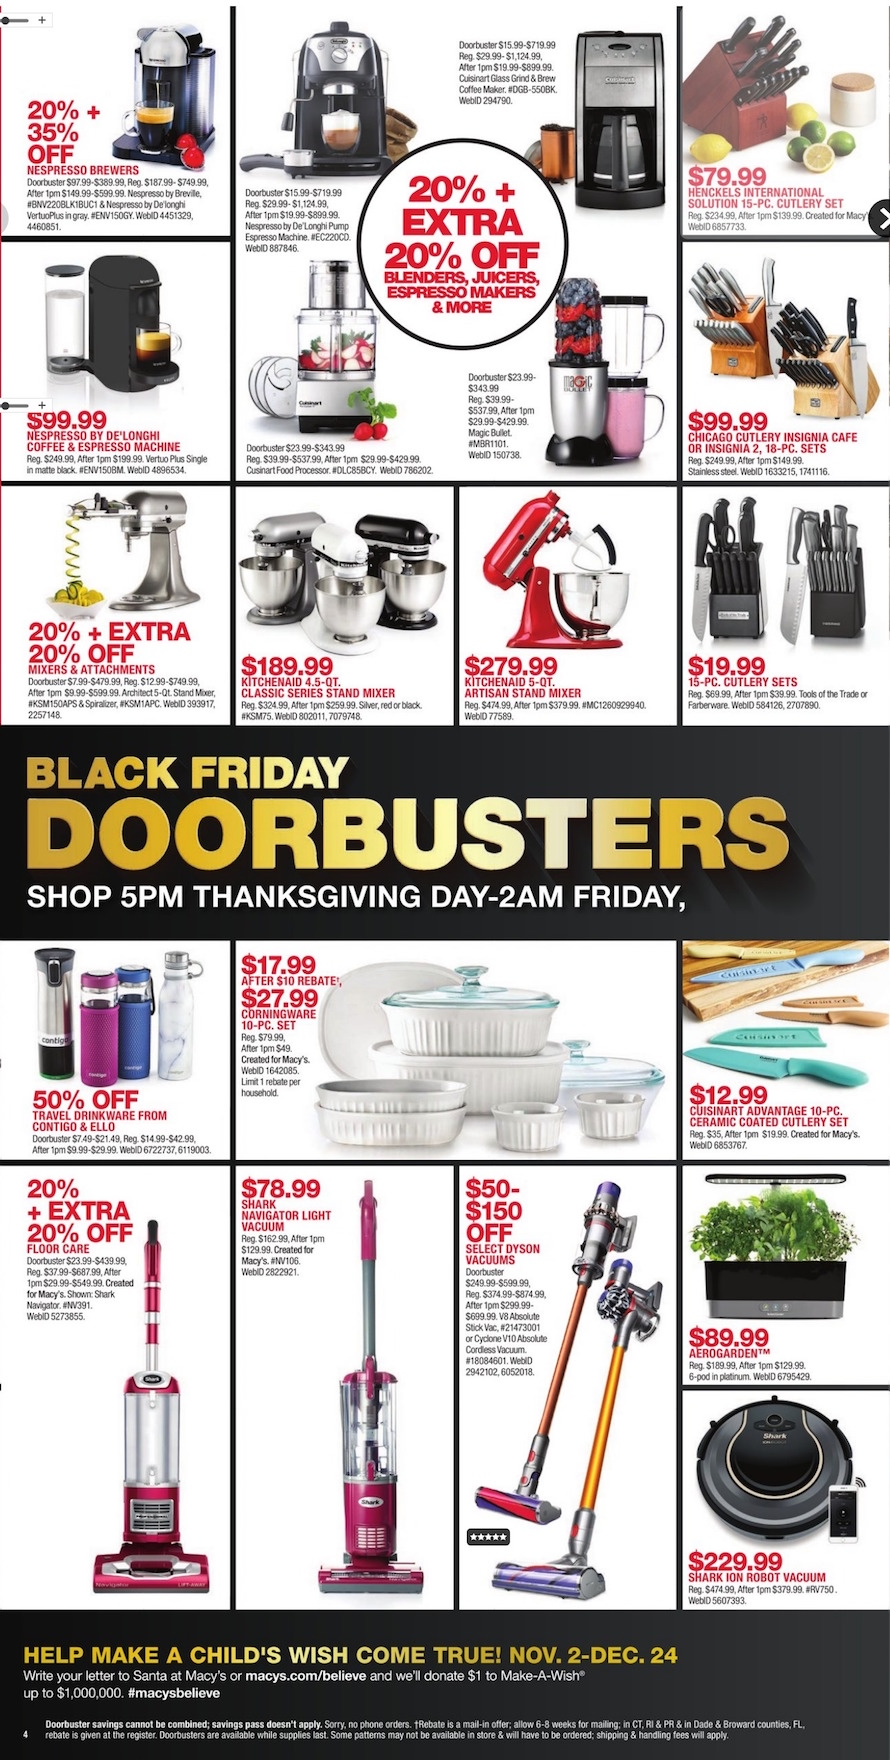 62dca3d80 Macy's Black Friday 2018 Ad, Deals and Store Hours - NerdWallet